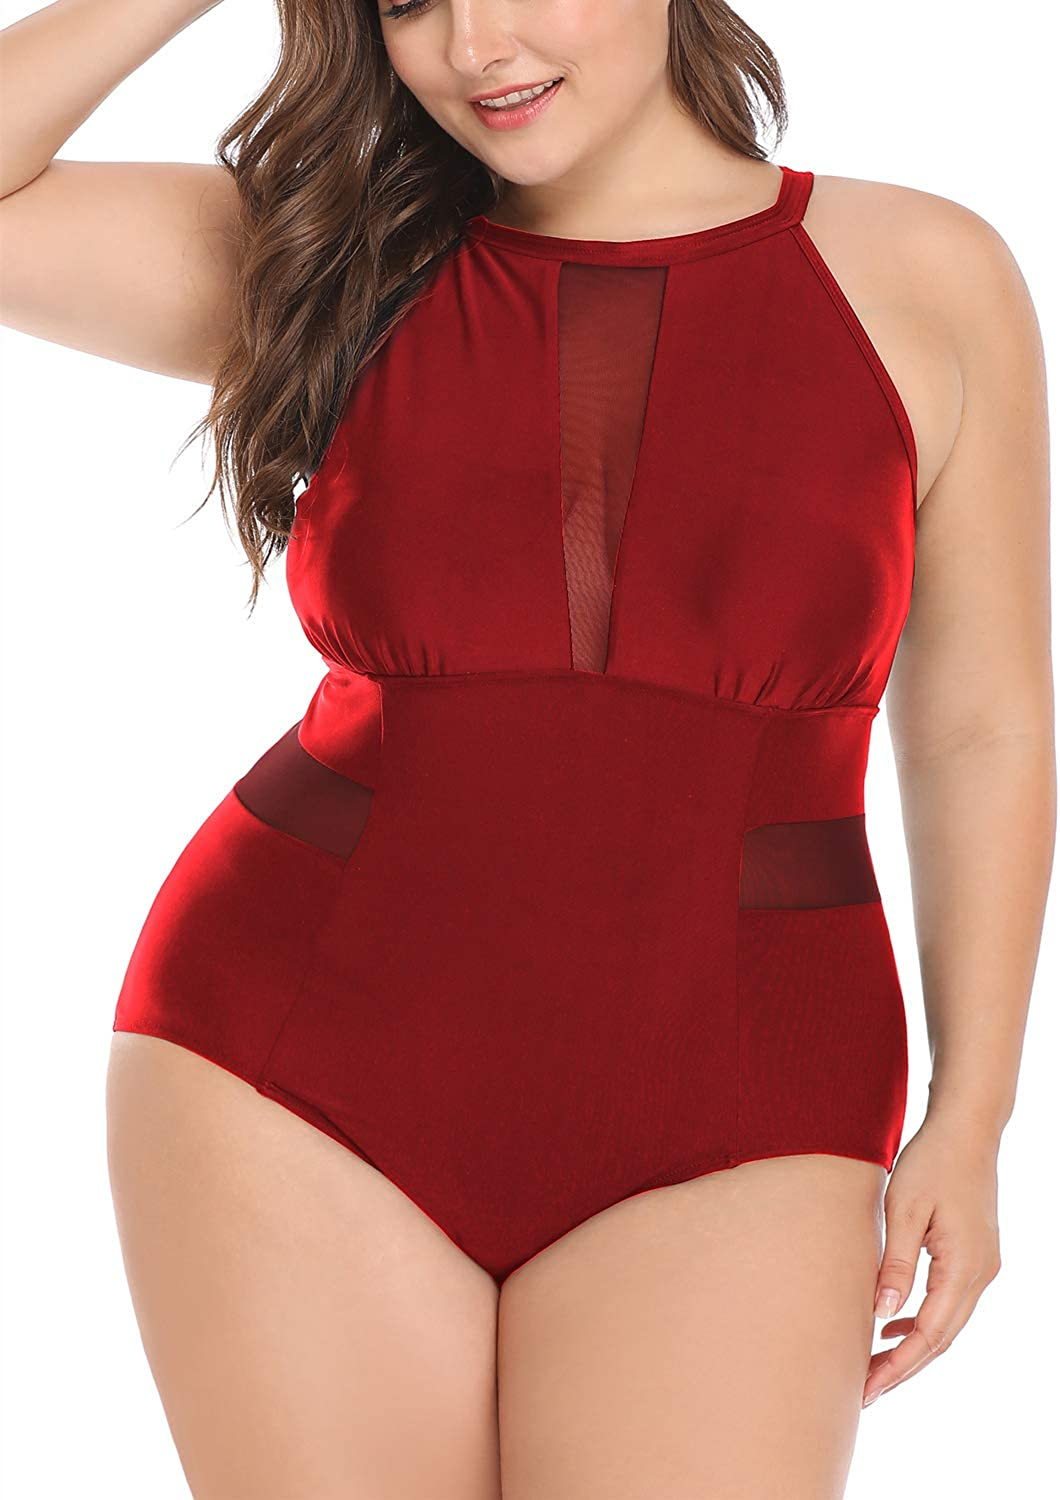 Daci Plus Size One Piece Swimsuit for Women High Neck Plunge Mesh Cutout Monokini Swimwear